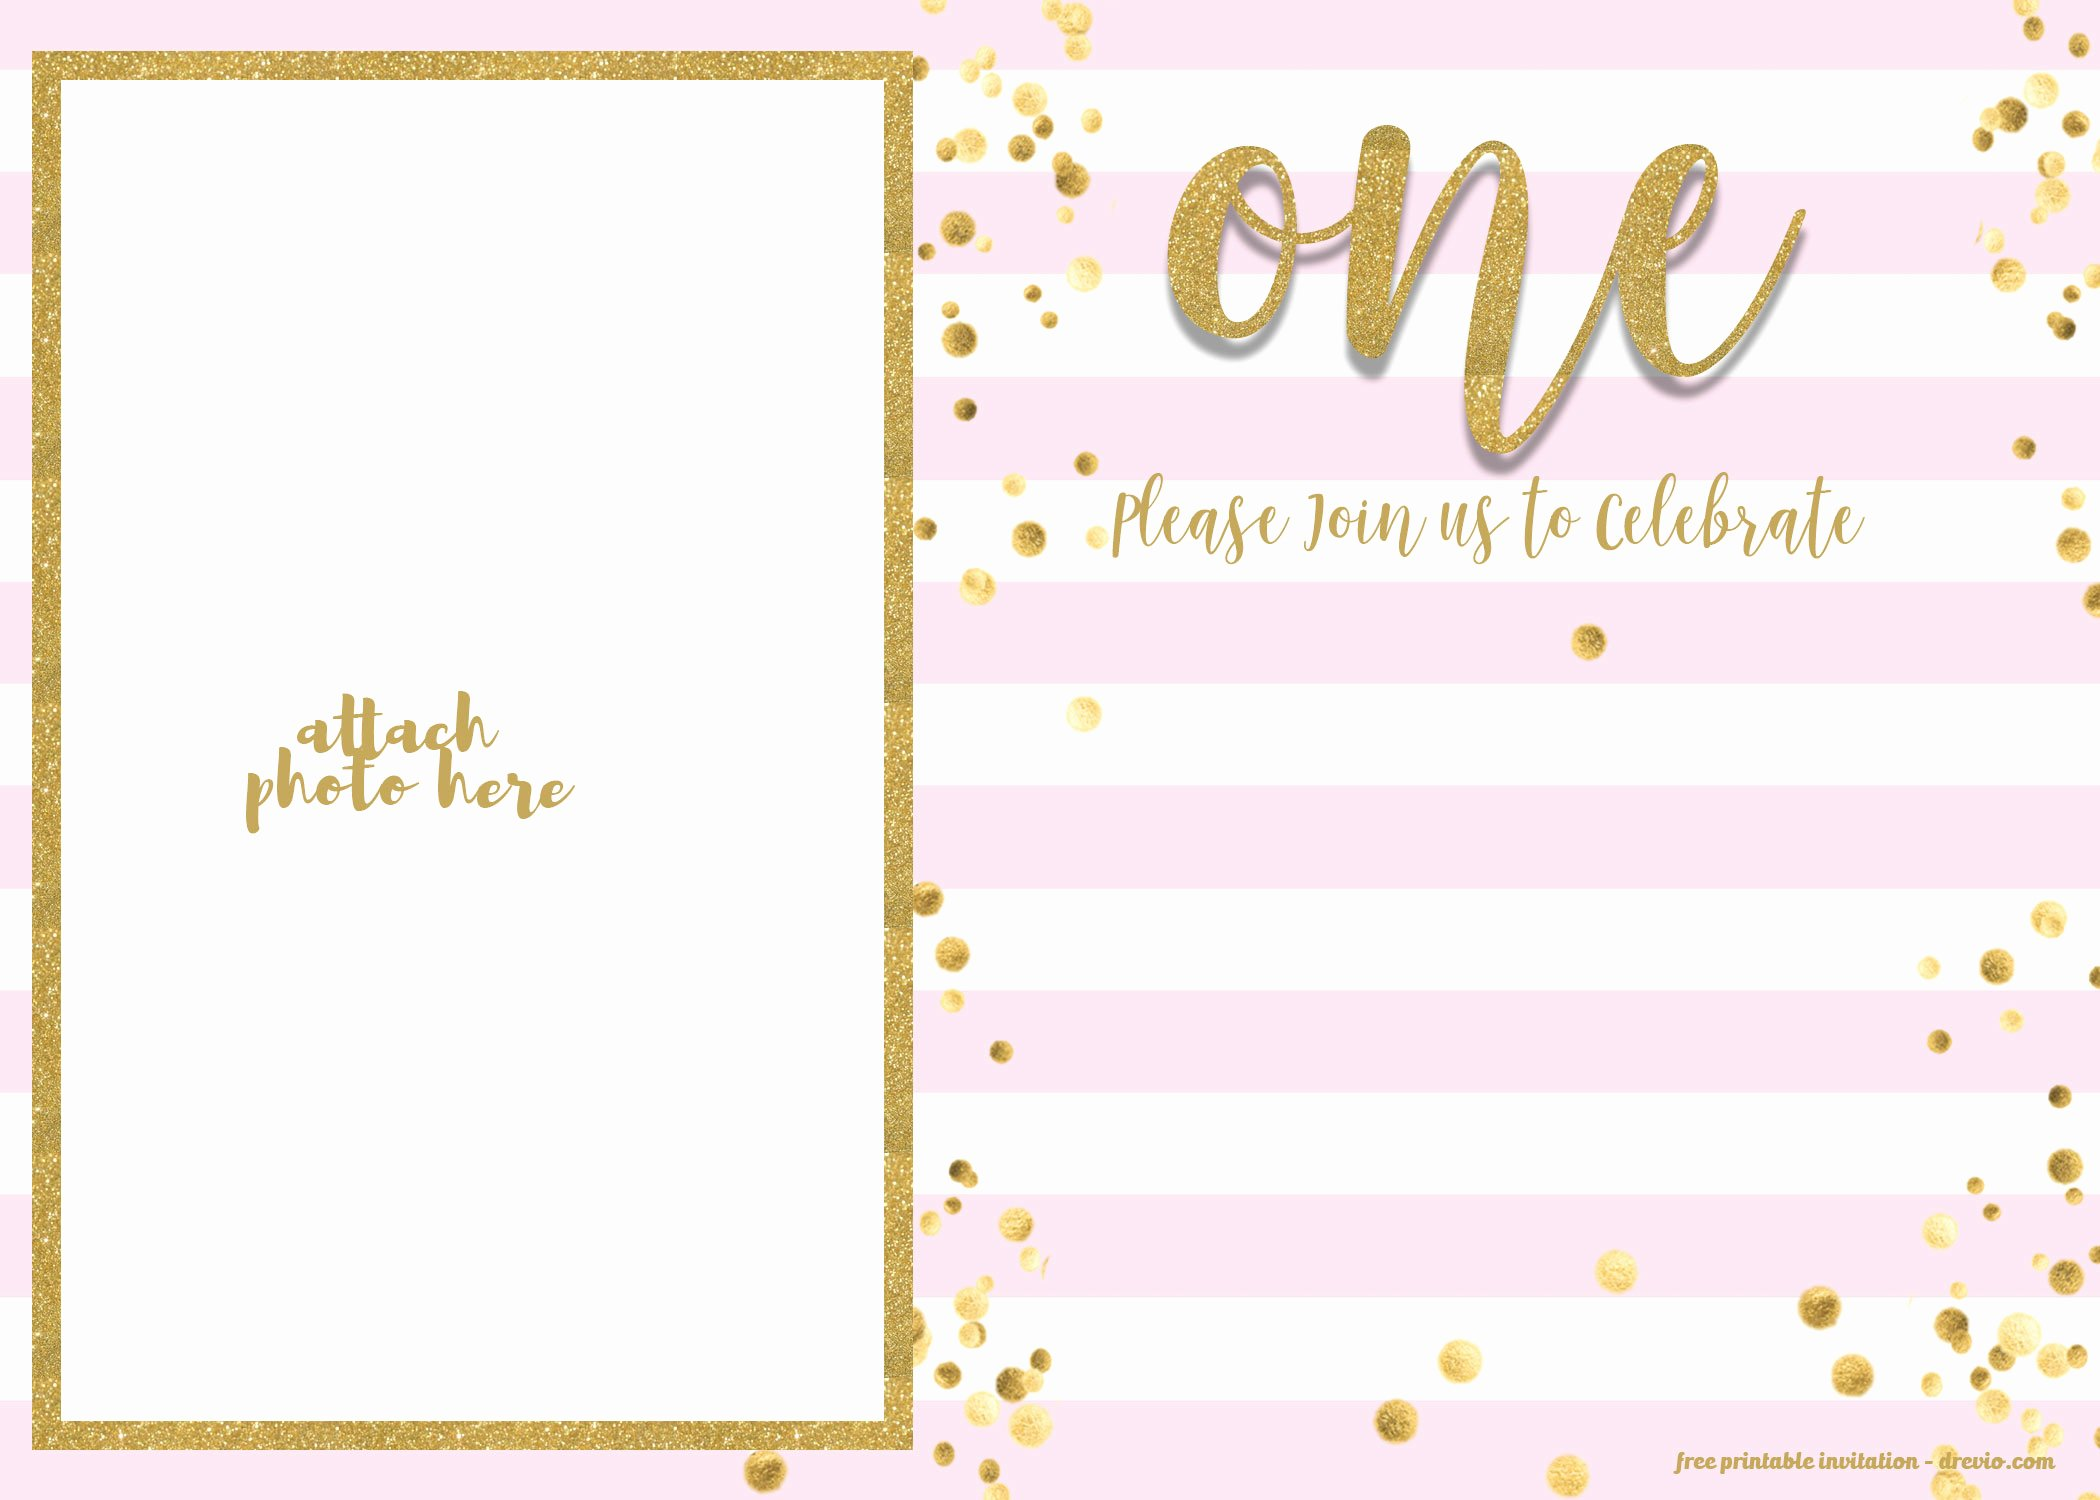 First Birthday Invitation Template Free Fresh Free 1st Birthday Invitations Template for Girl – Free